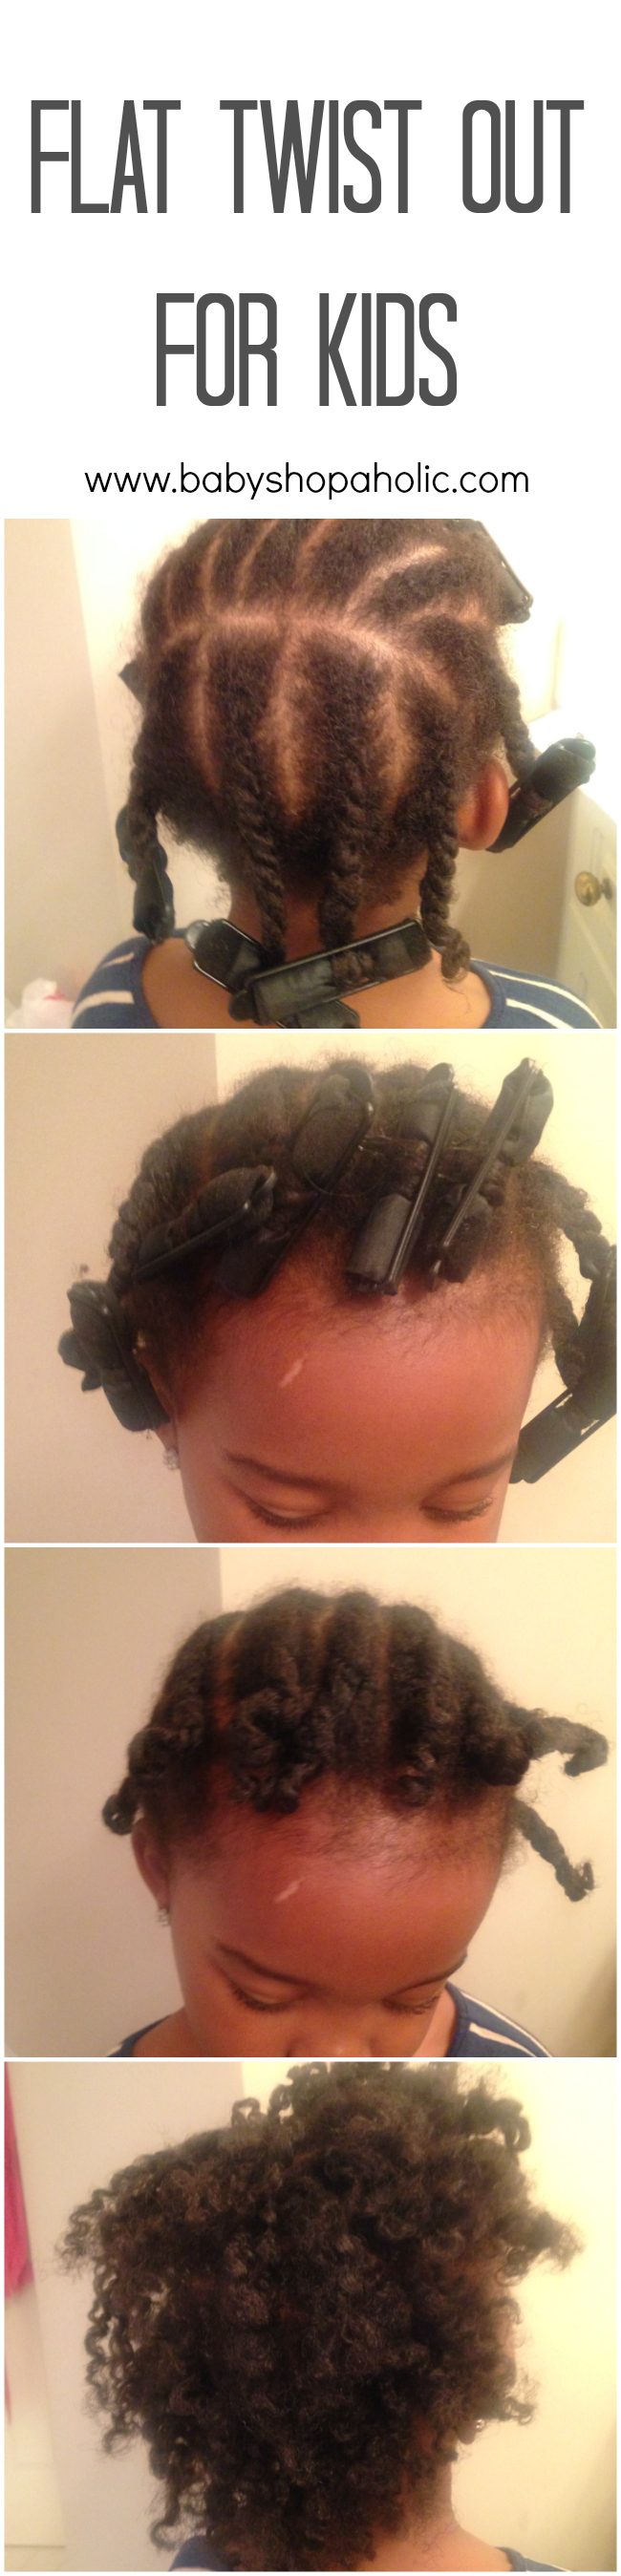 Flat Twist Out Tutorial For Kids With Eden Kids